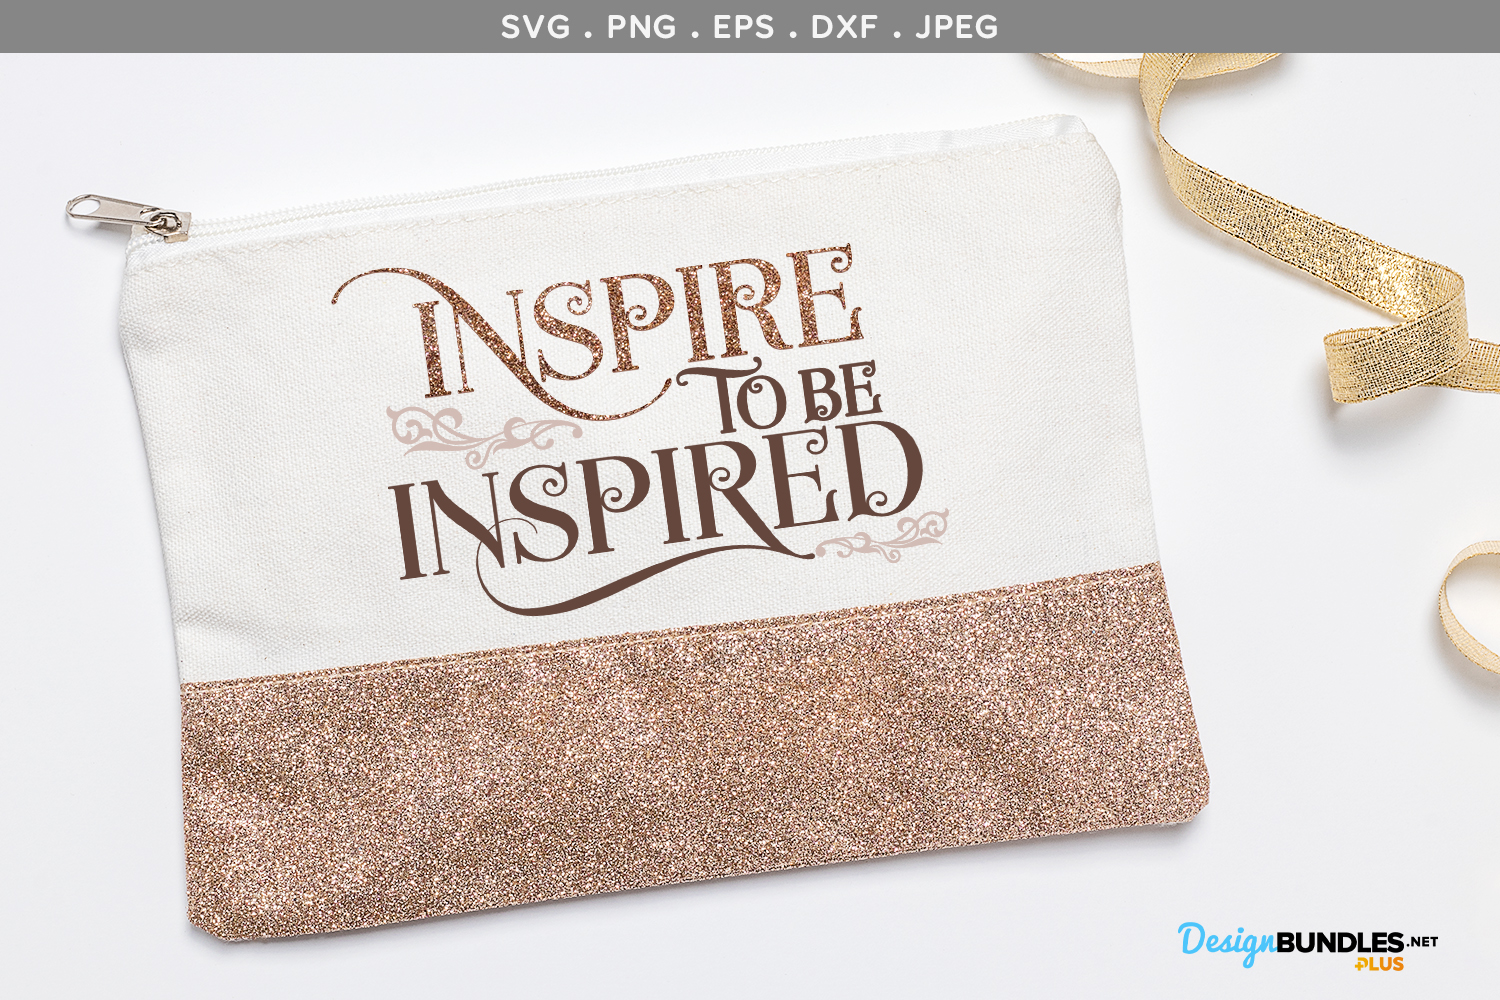 Inspire to be Inspired - svg cut file example image 1